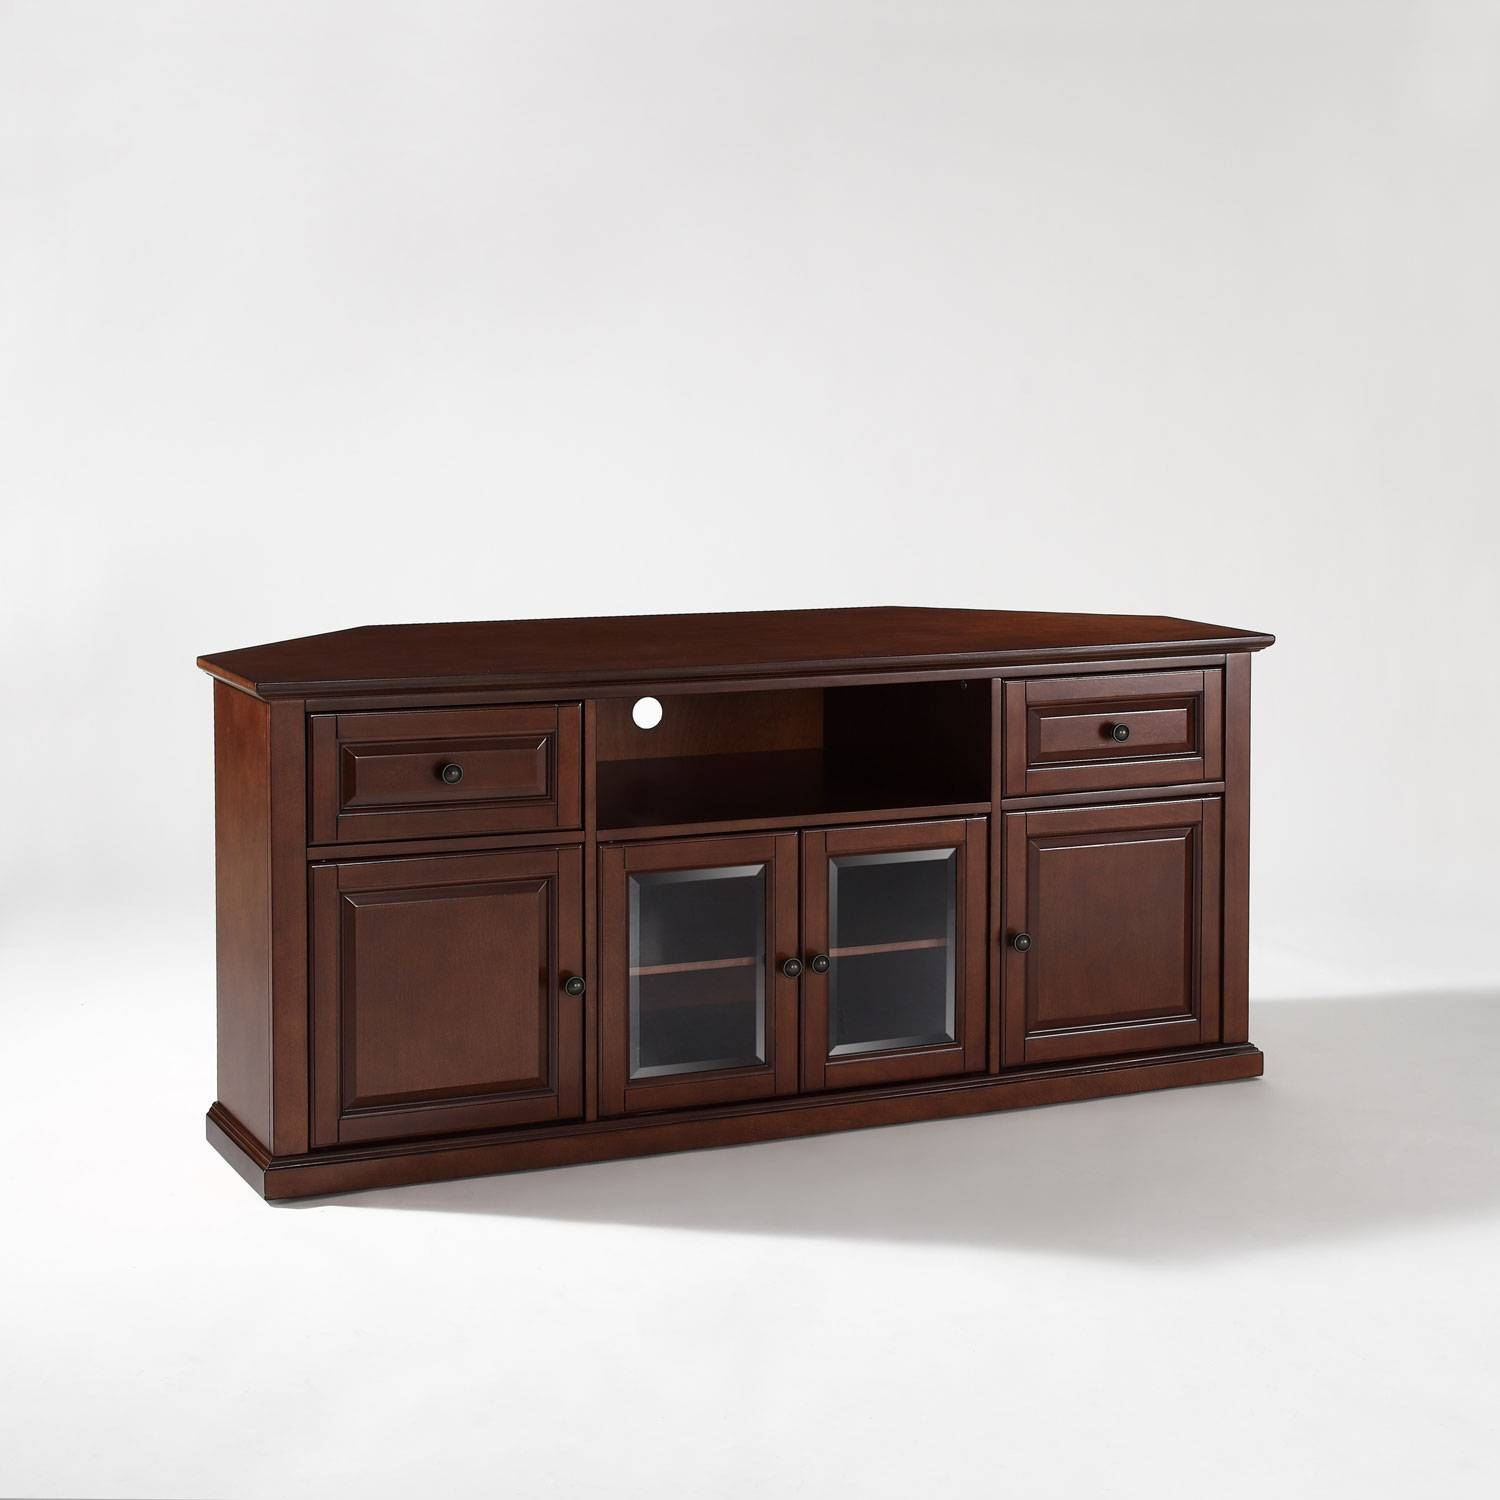 60 Inch Corner Tv Stand In Vintage Mahogany Crosley Furniture Pertaining To 50 Inch Corner Tv Cabinets (View 2 of 15)